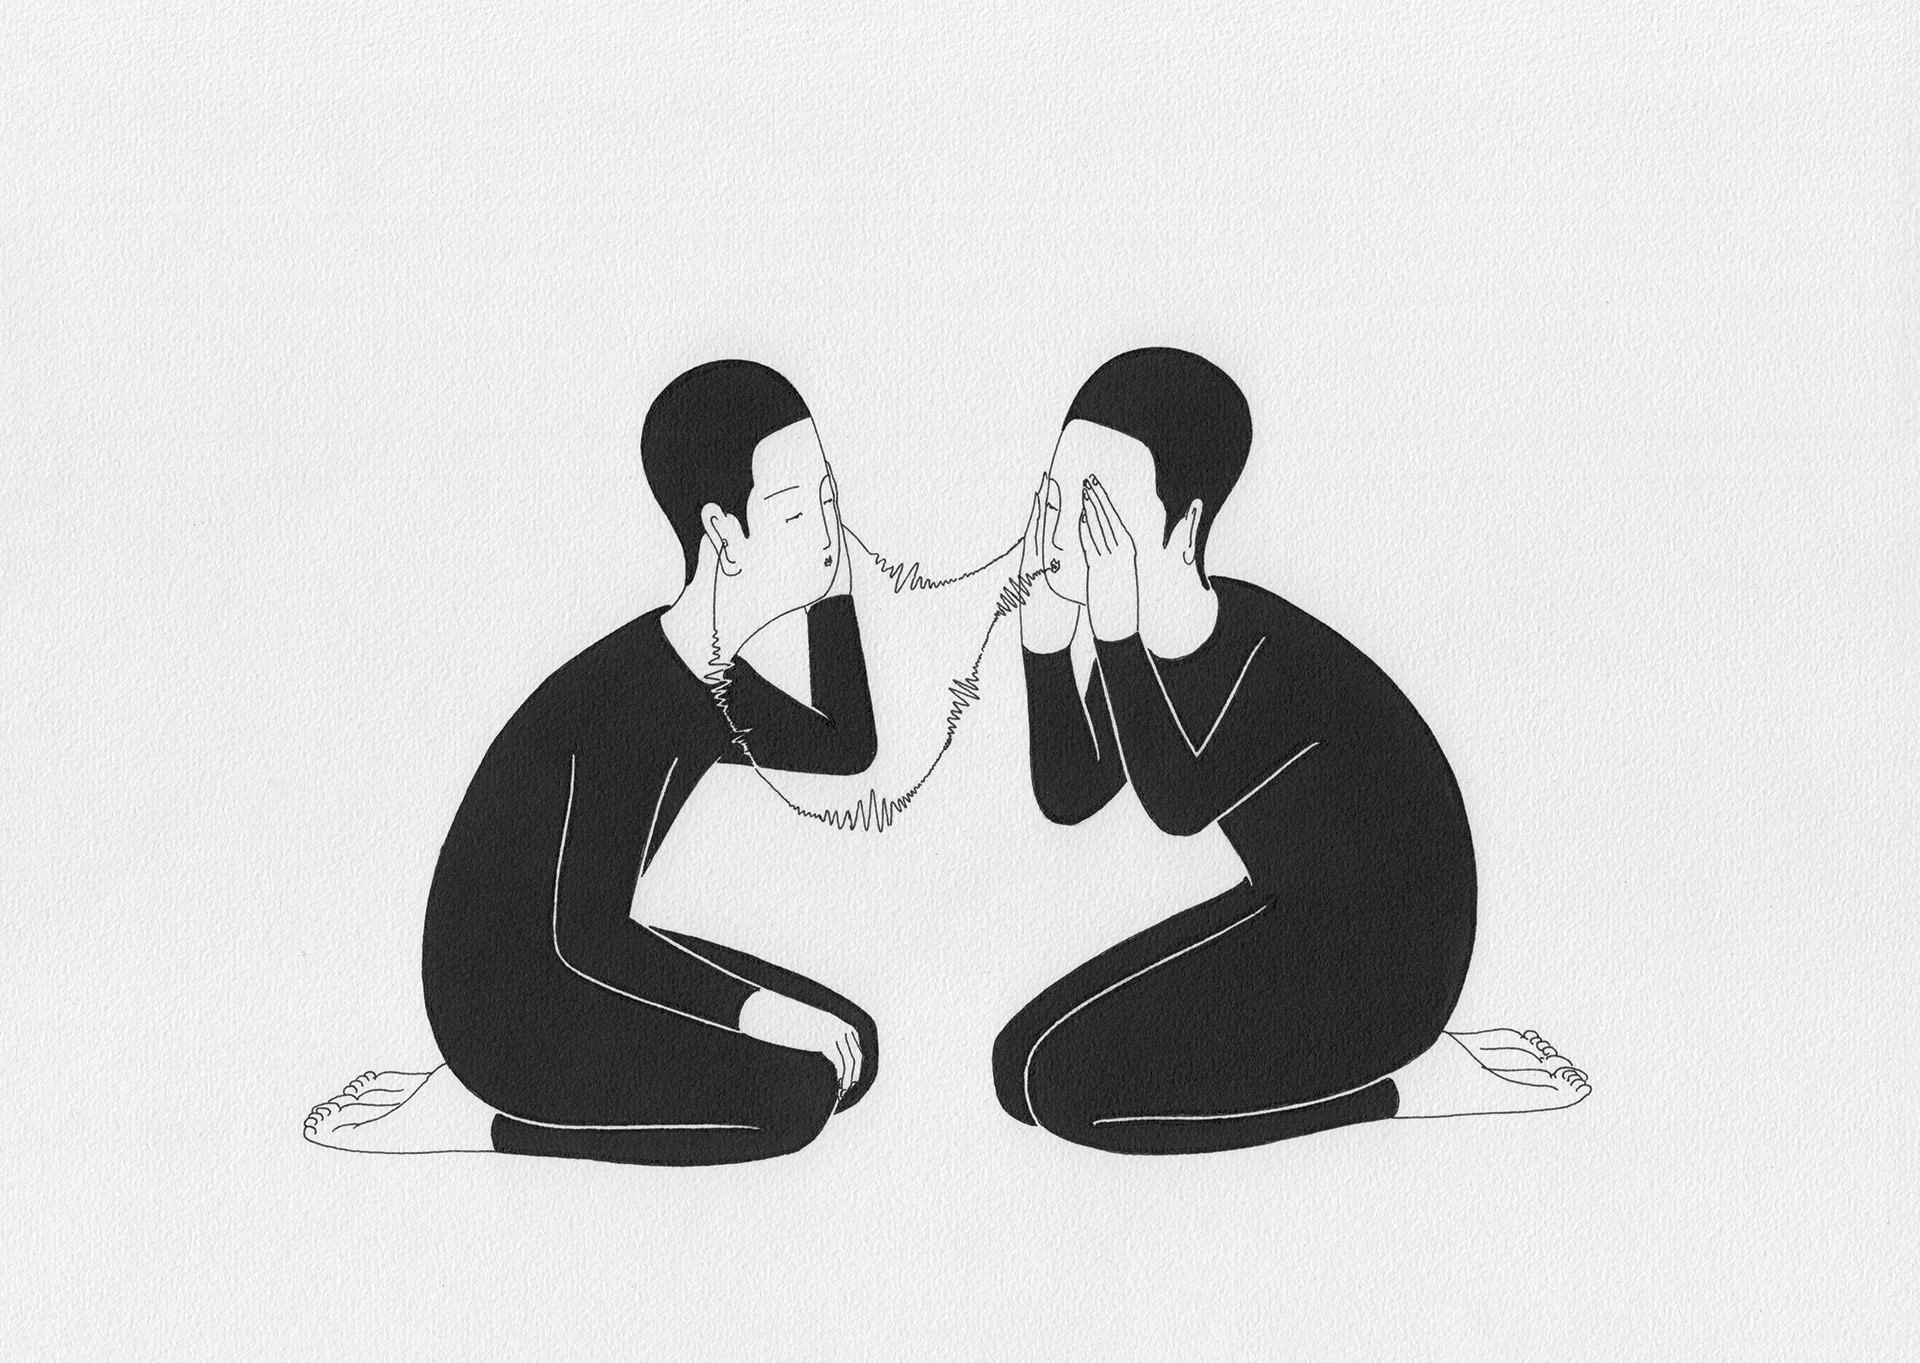 통신   /   Signal   Op. 0094CS-12 - 29.7 x 21 cm, 종이에 펜, 마커 / Pigment liner and marker on paper, 2015 Commissioned by Maison Kitsuné